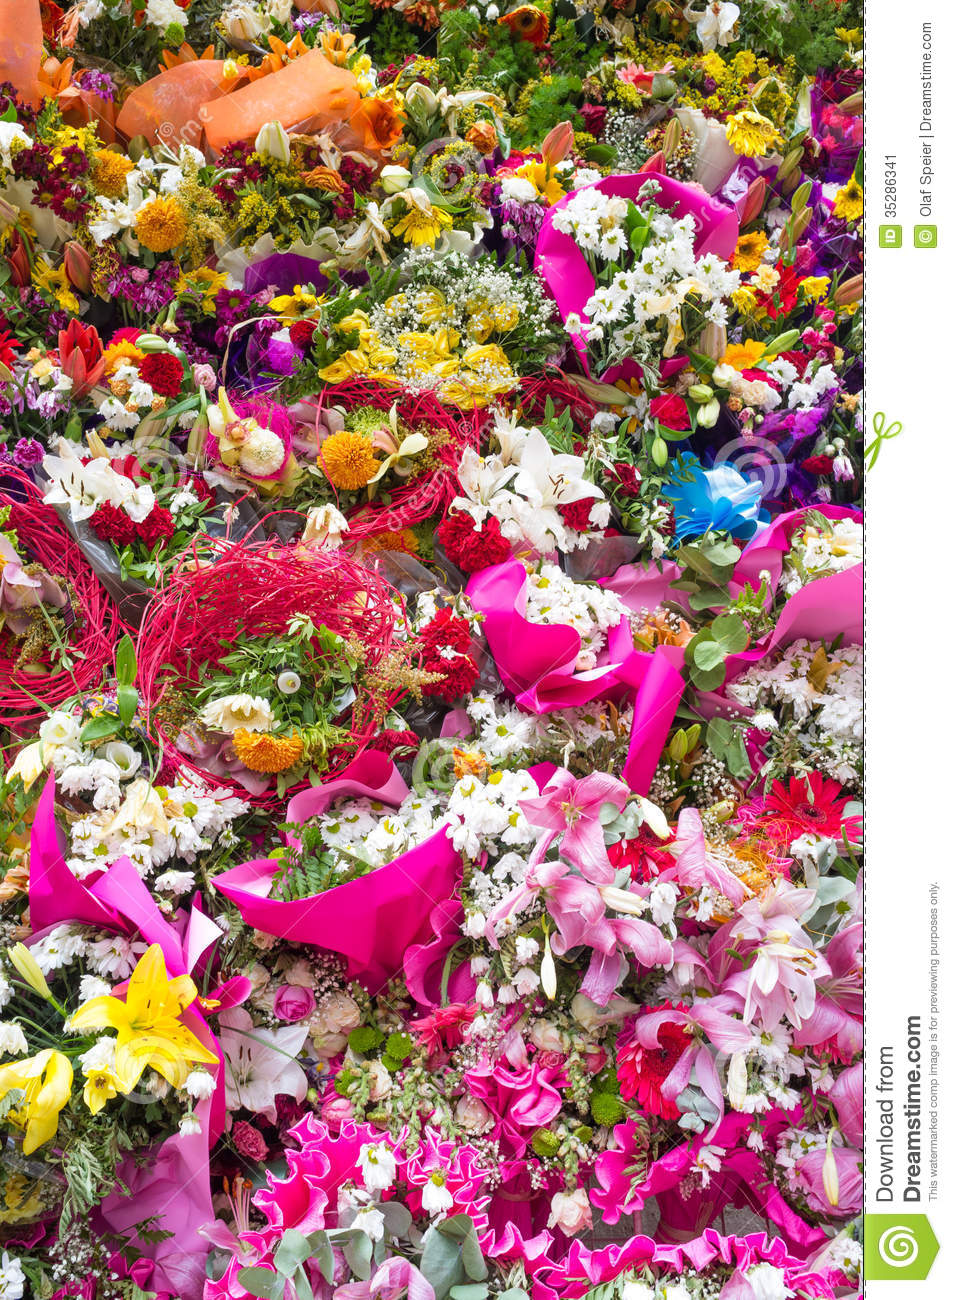 Dorable Massive Bouquet Of Flowers Image Collection - Wedding and ...